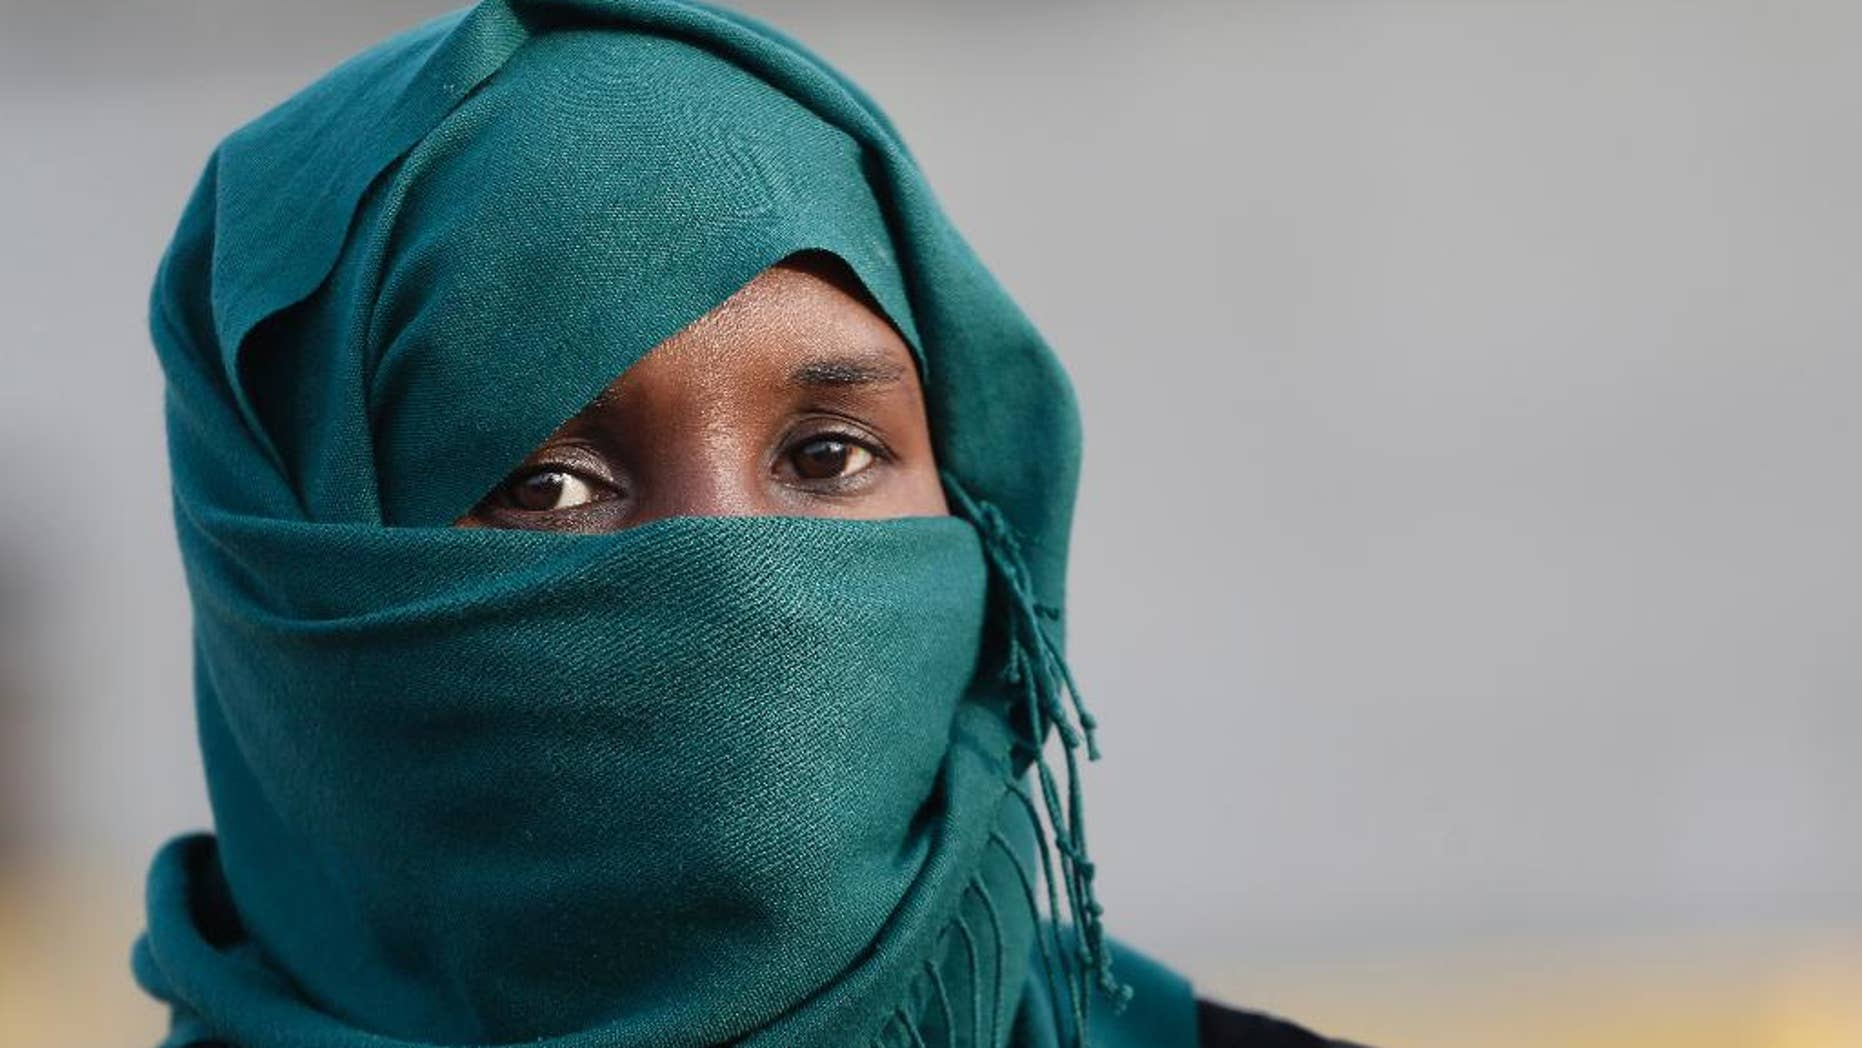 An African immigrant, one of the 32 from Syria and Somalia who survived from one of the deadliest migrant boat accidents which occurred on May 5 in Greek waters, arrives at the port of Piraeus, near Athens, on Monday, May 12, 2014. At least 22 people, including families trapped in a flooded cabin, drowned when a yacht and a dinghy crammed with migrants trying to slip into Greece capsized last week in the eastern Aegean Sea, next to the island of Samos, authorities said. (AP Photo/Petros Giannakouris)